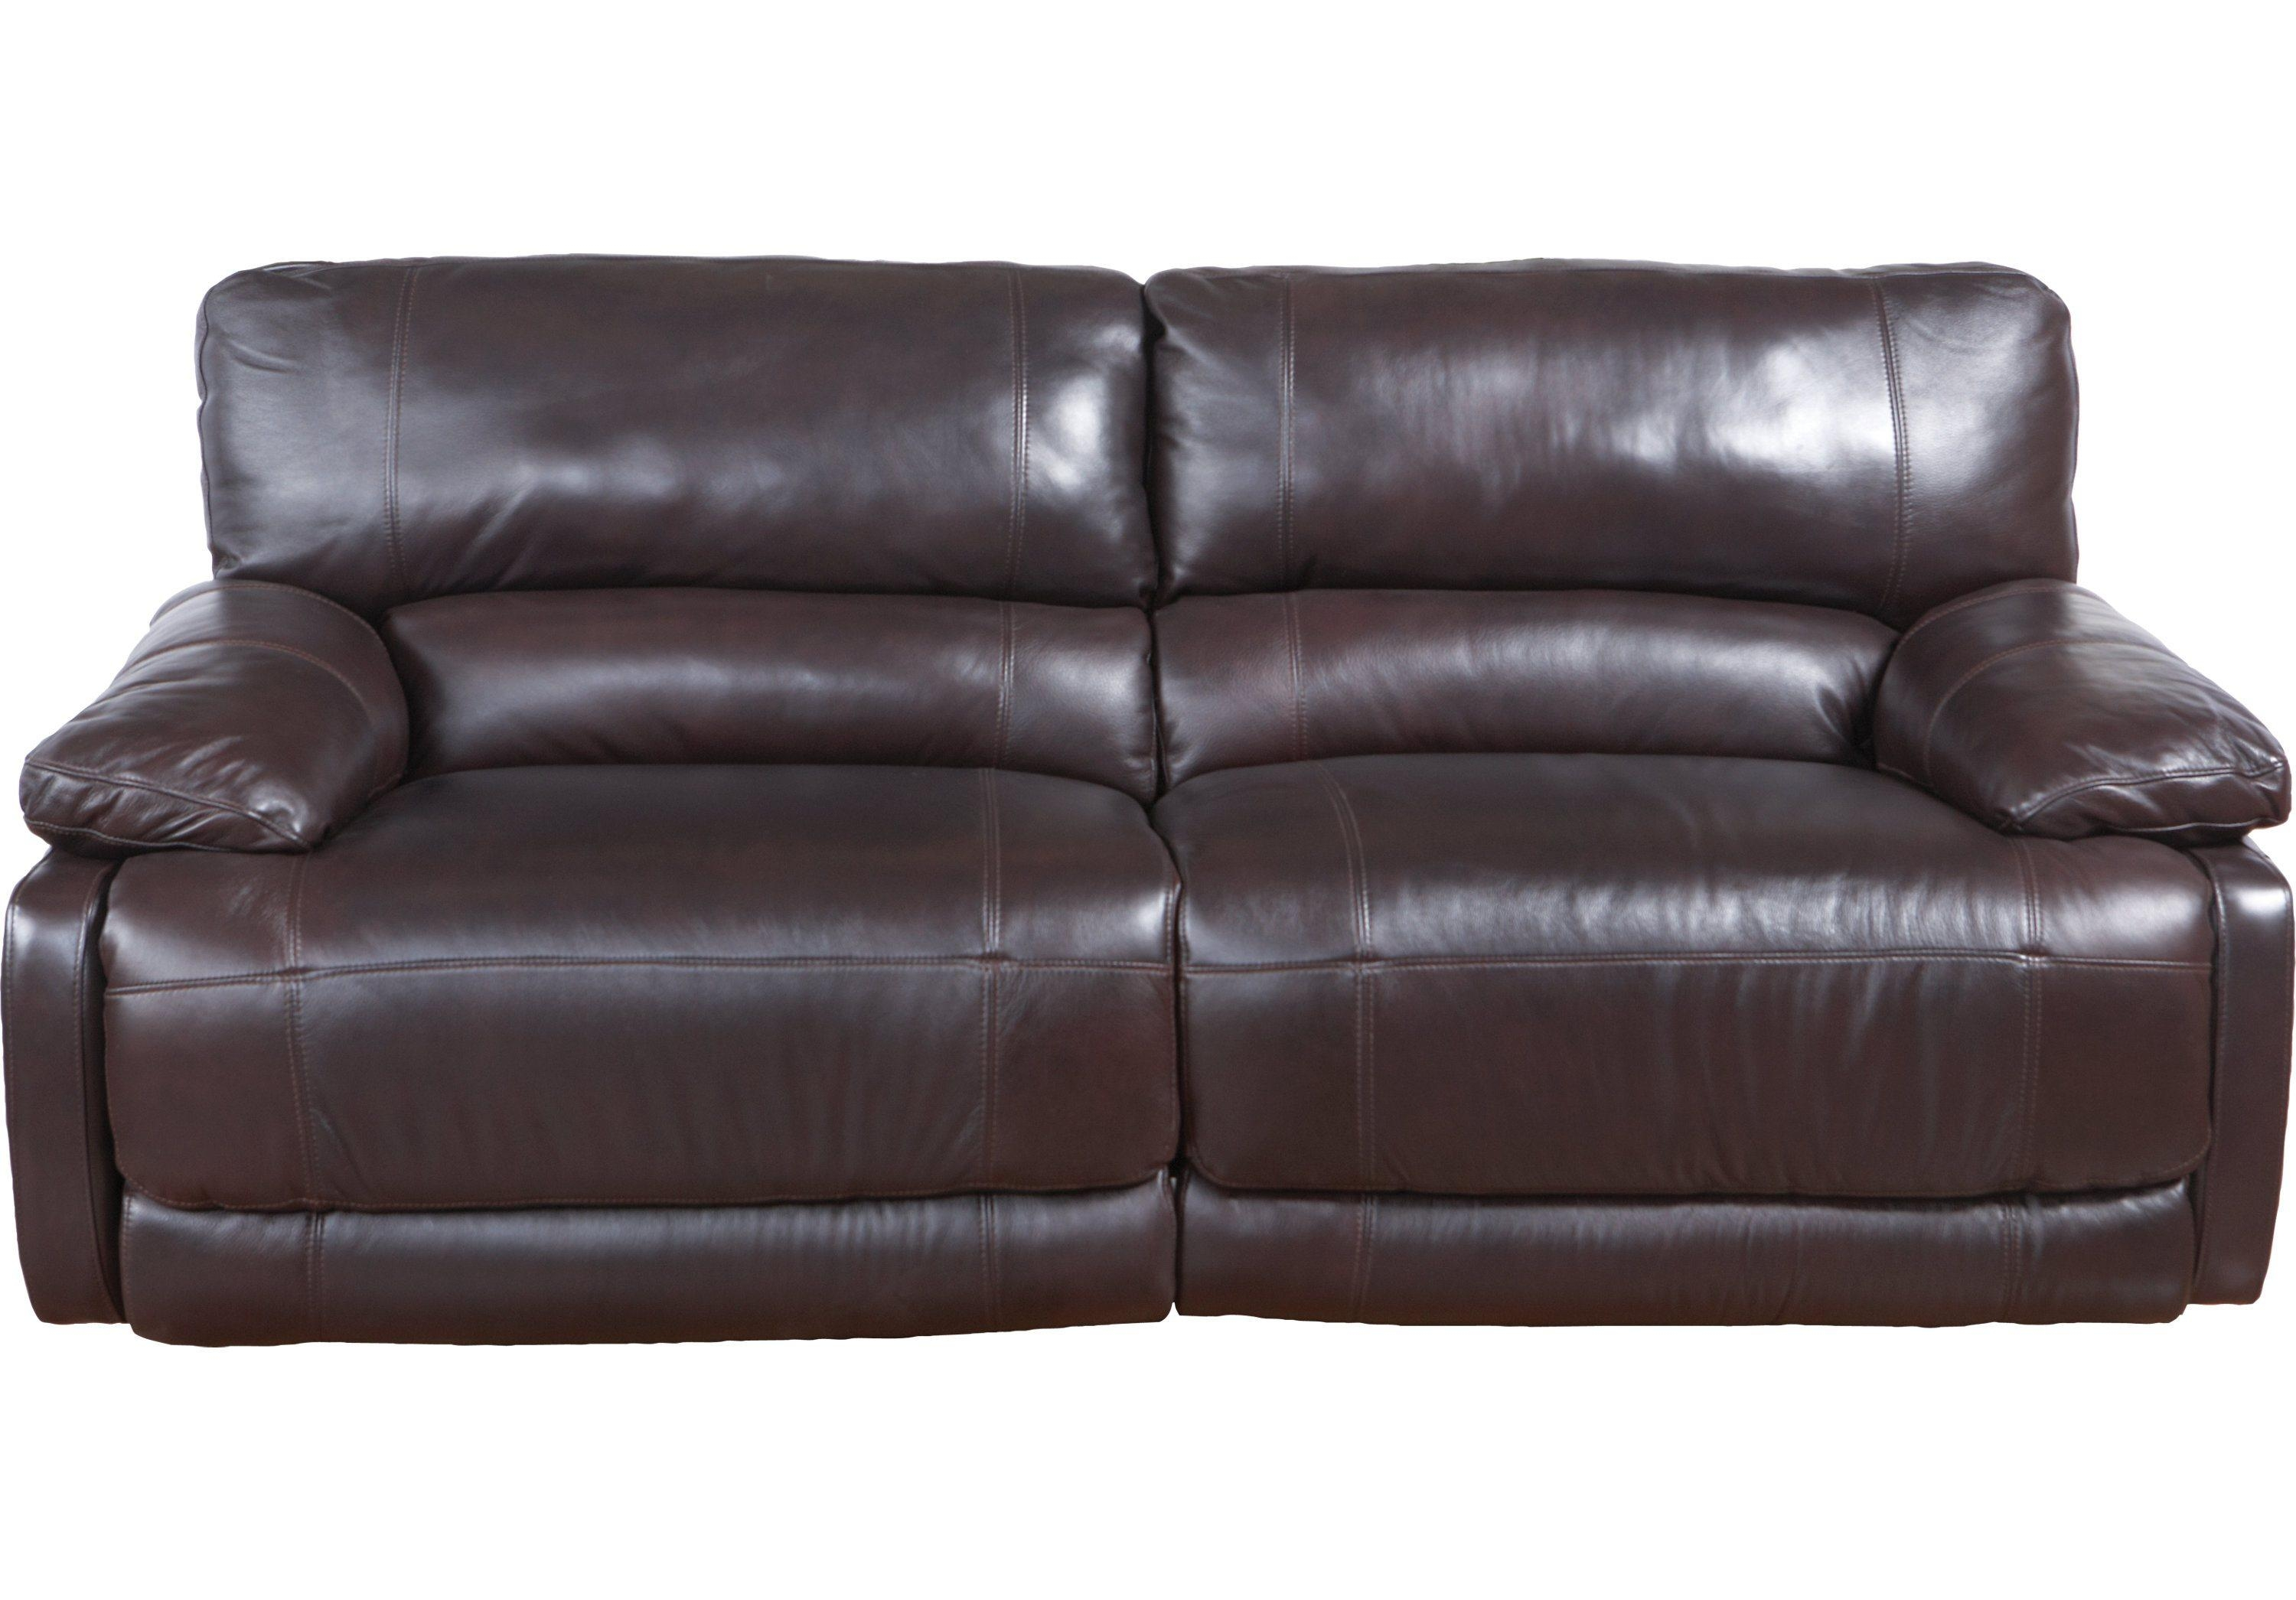 Sofas Center : Cindy Crawford Sectional Metropolis Sofa Sleeper Intended For Cindy Crawford Sofas (Image 13 of 20)